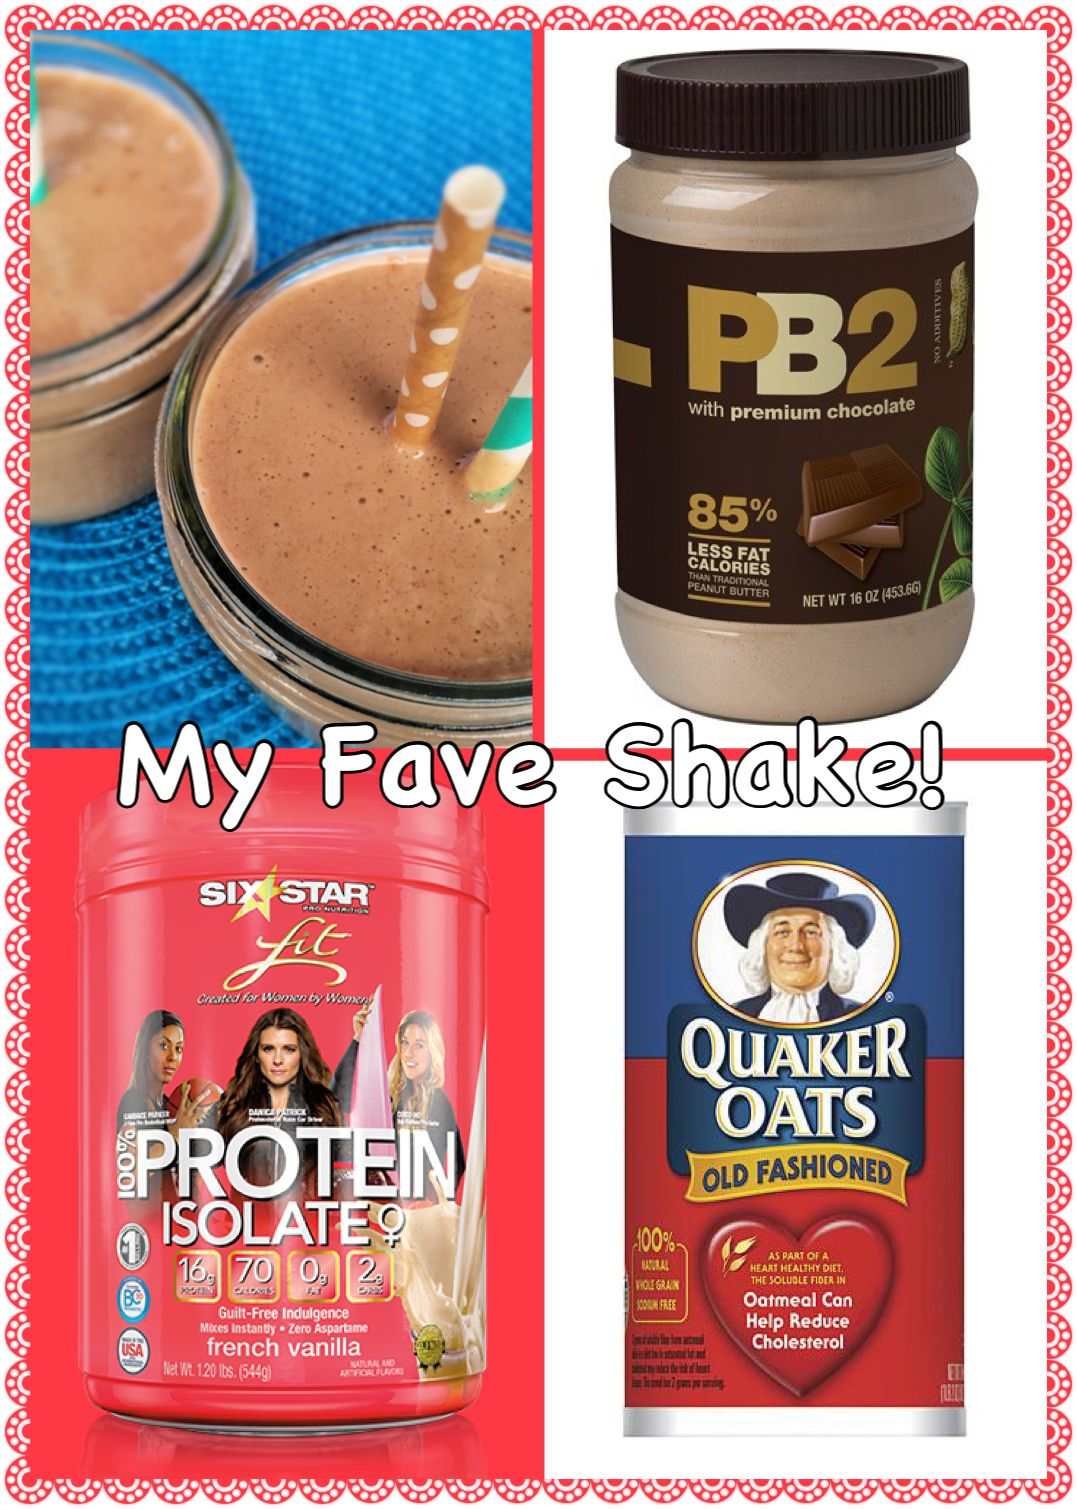 My fave protein shake is 2 Tbsp of Choc PB2, 1/4 cup oatmeal, 4 ice cubes, 1 scoop of Vanilla protein powder, 1/2 banana & 1 cup of 1% milk.  330 calories, 47g carbs, 32g protein.  You can shave calories and carbs off by switching to almond milk and eliminating the oatmeal.... Regardless it is super yummy.  Sometimes I add some spinach for some extra vitamin C (doesn't affect the taste!)!!